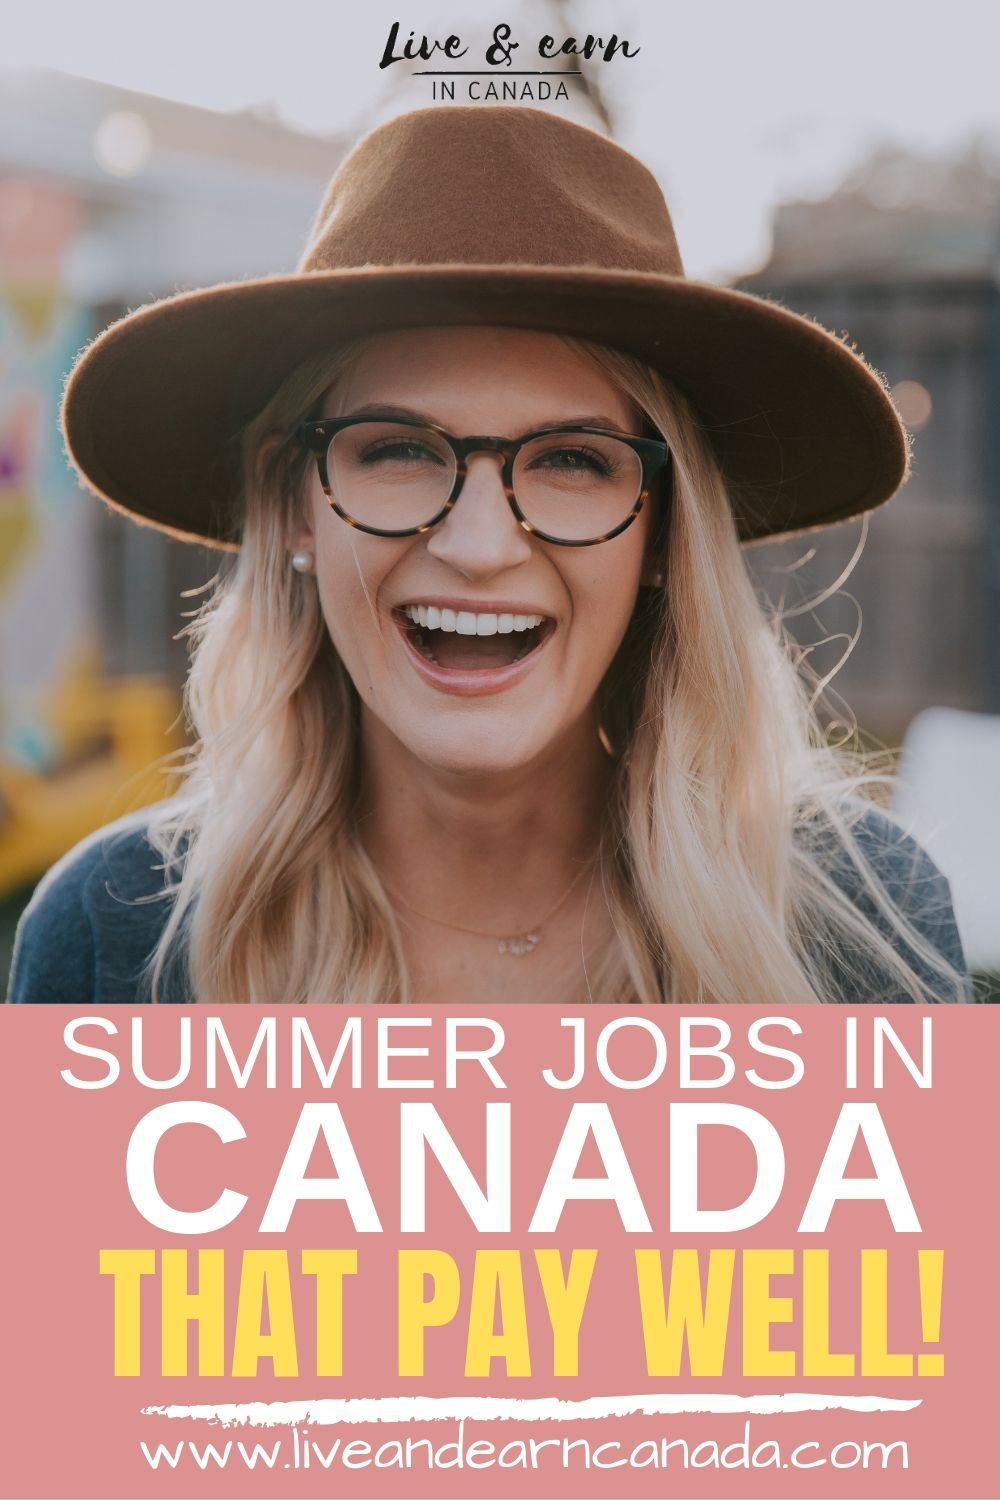 If you are looking for summer jobs in Canada, find the best work from home jobs in Canada as well as the great outdoors! Start earning money today #workincanada #summerjobsincanada #Canadajobs